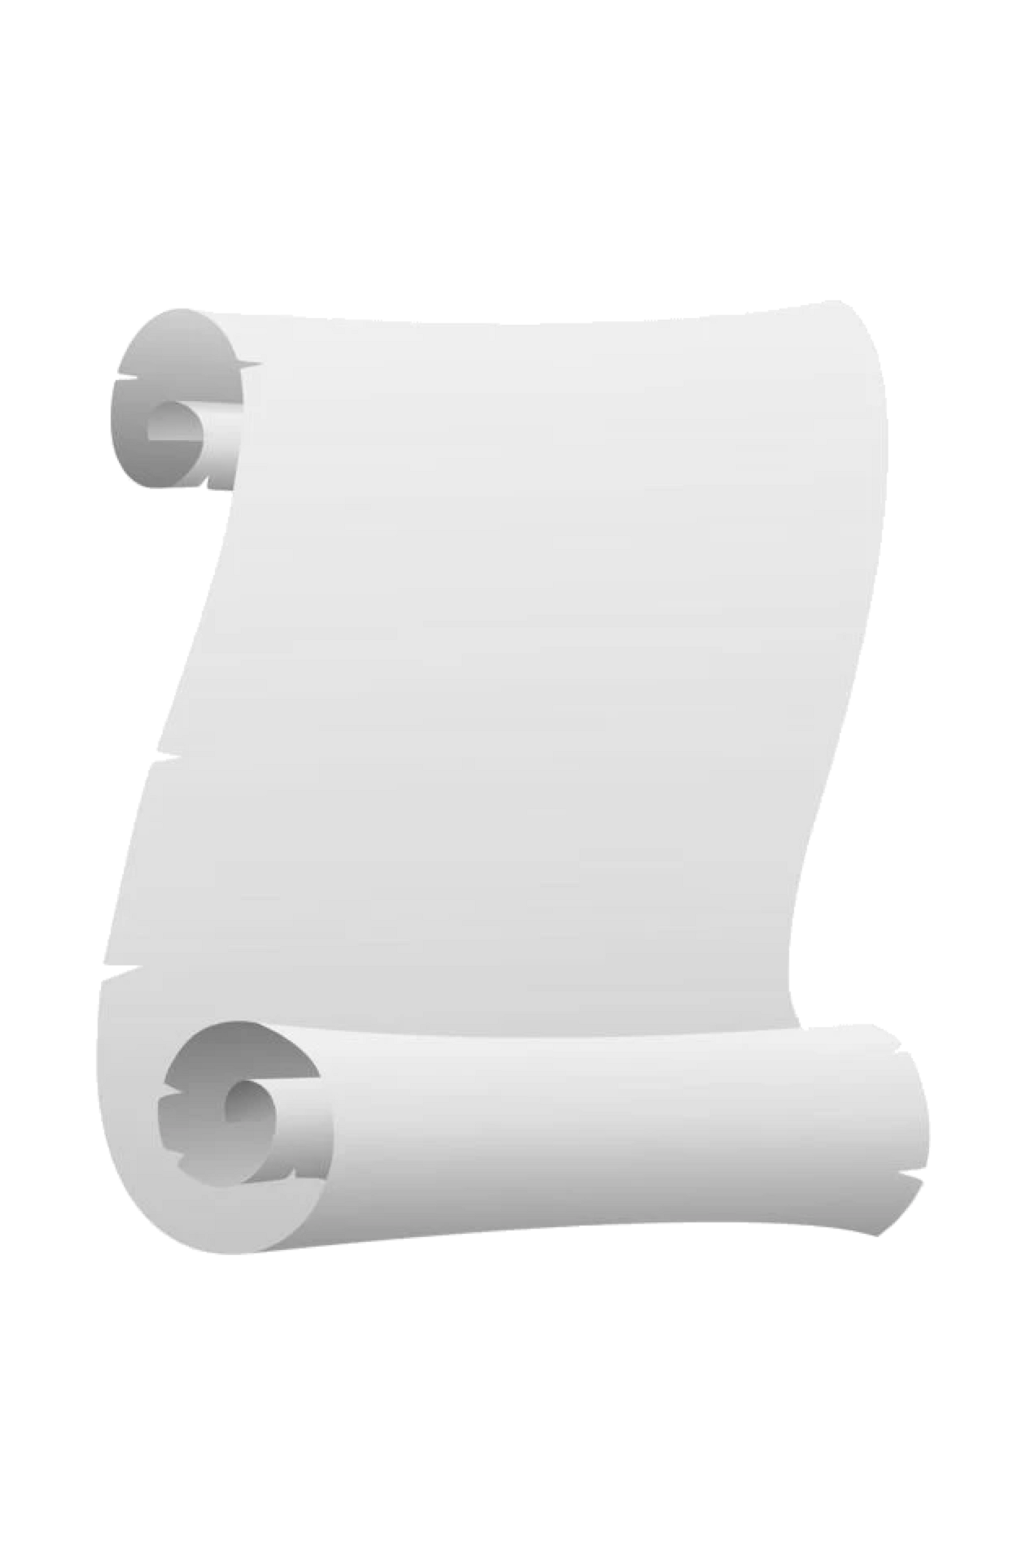 #scroll #white #clipart #freetoedit #freetoedit